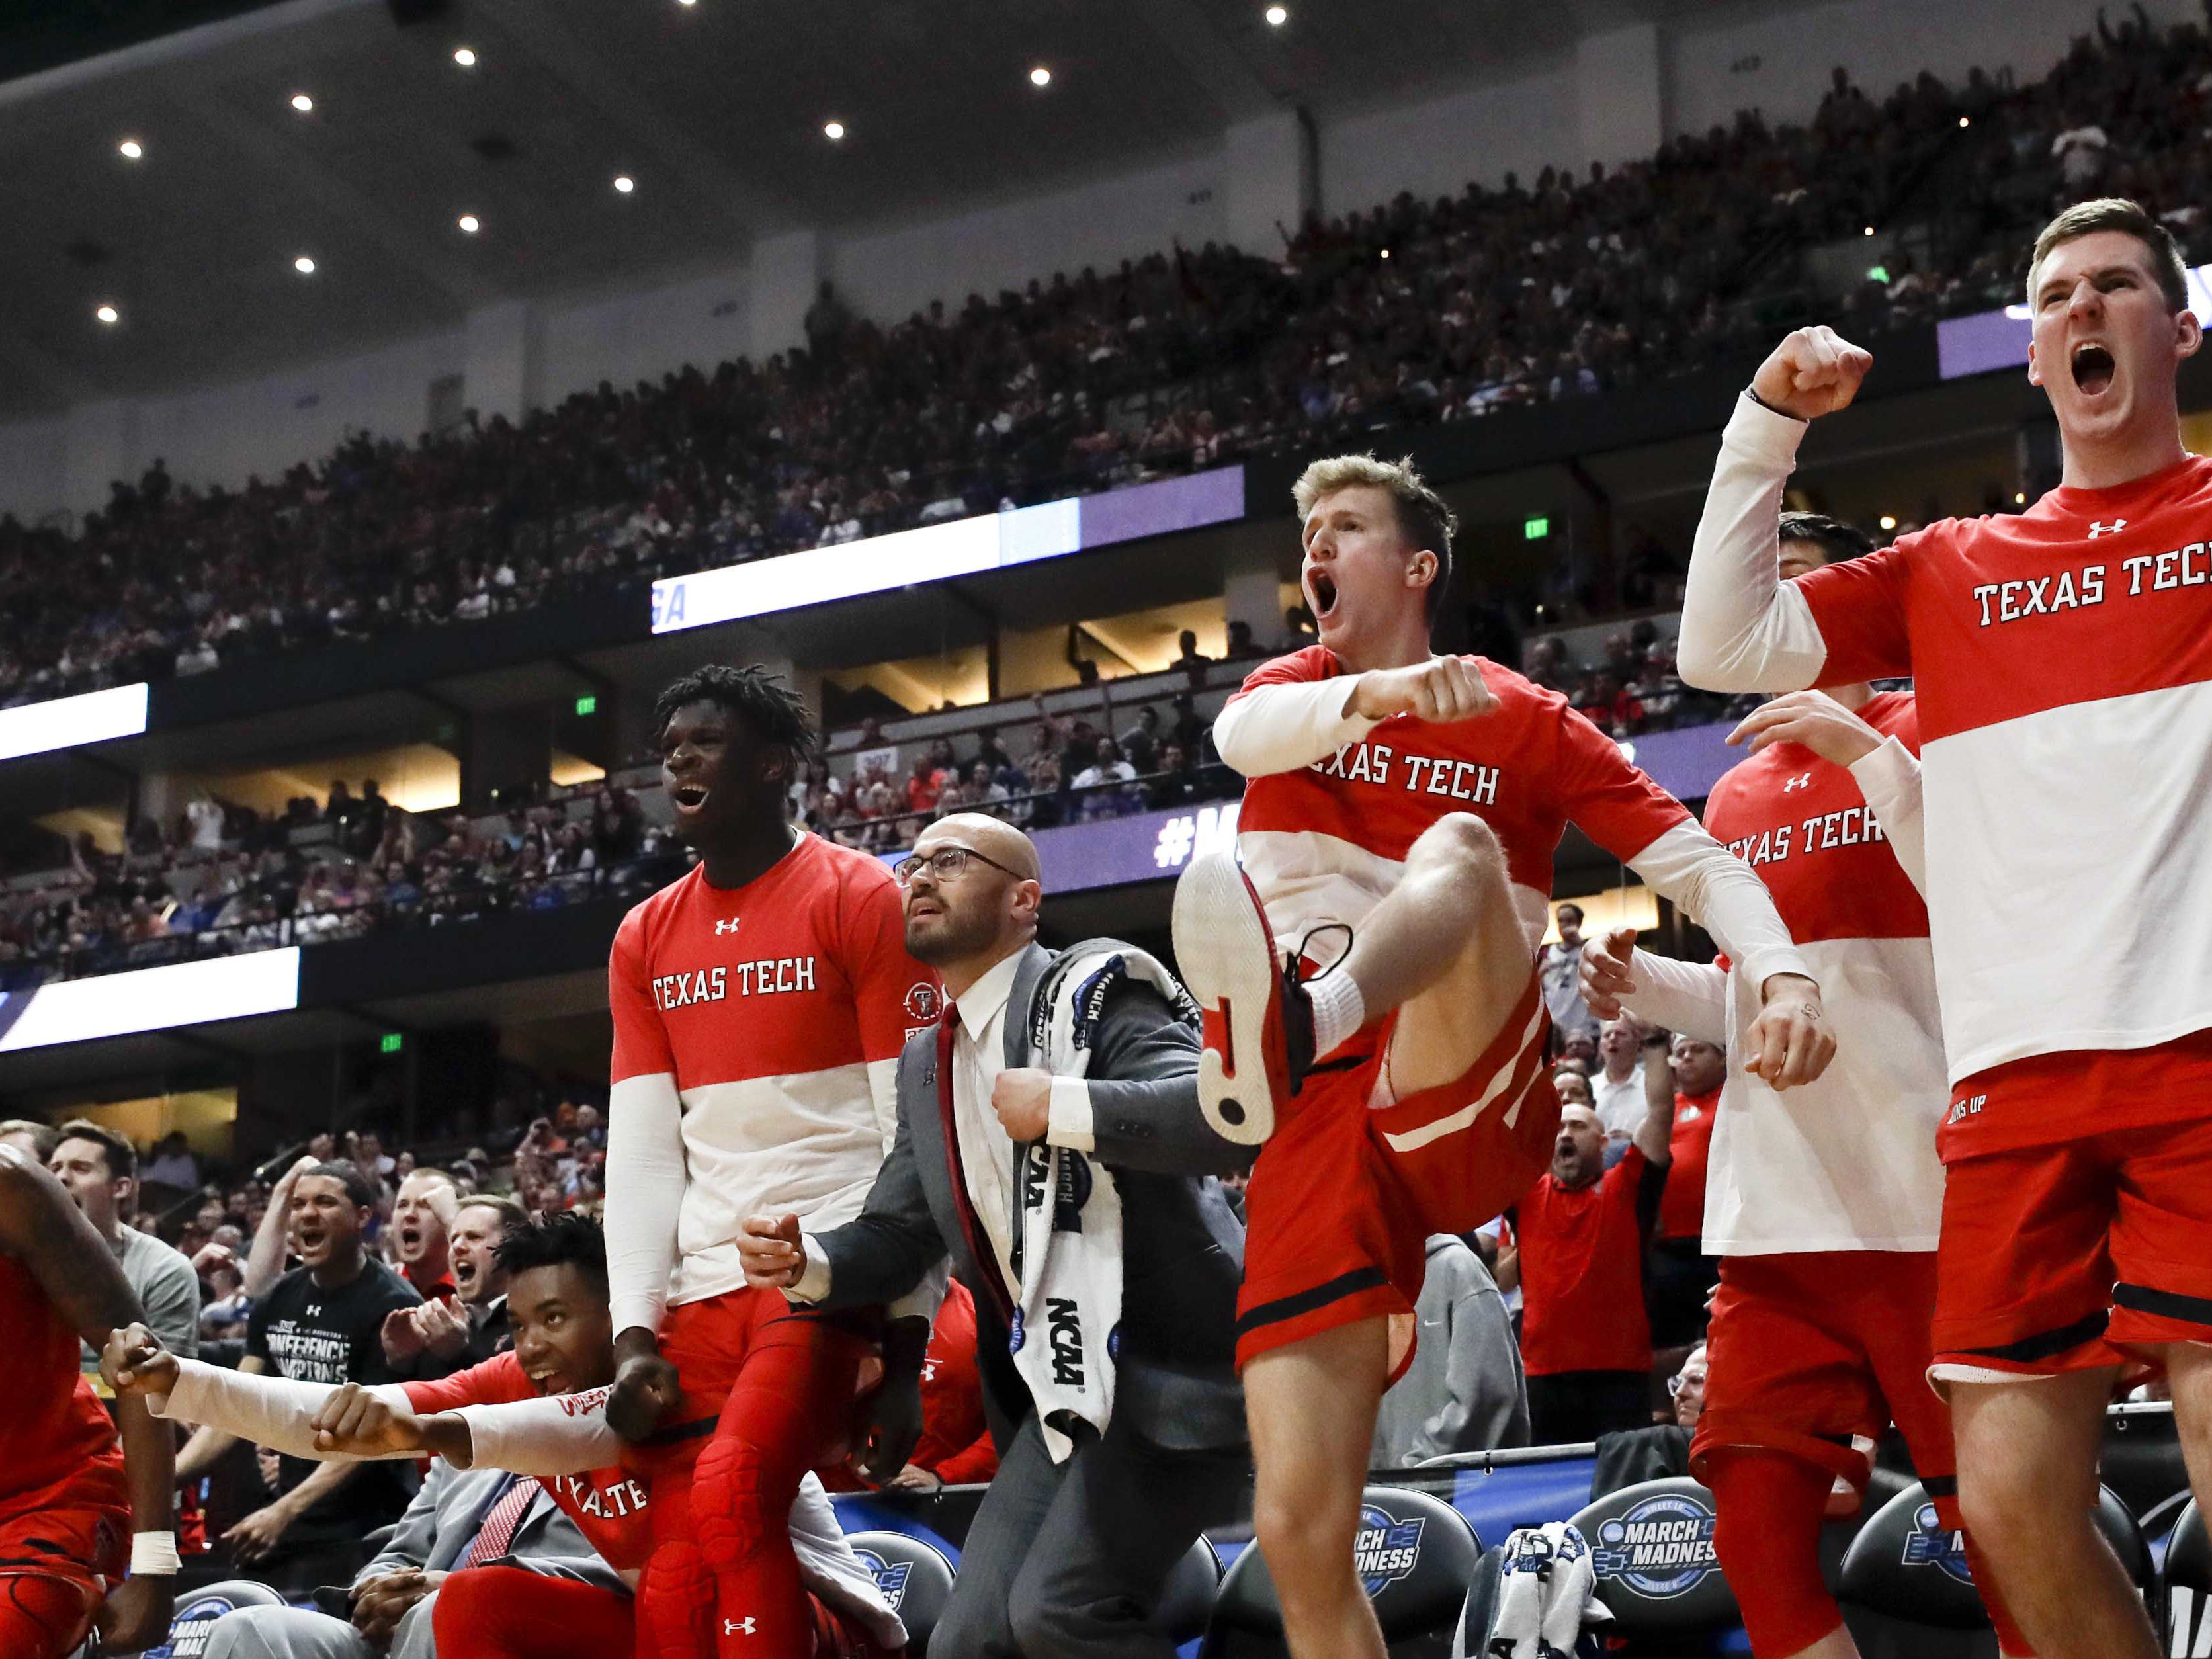 Texas Tech beats Gonzaga to reach Final Four